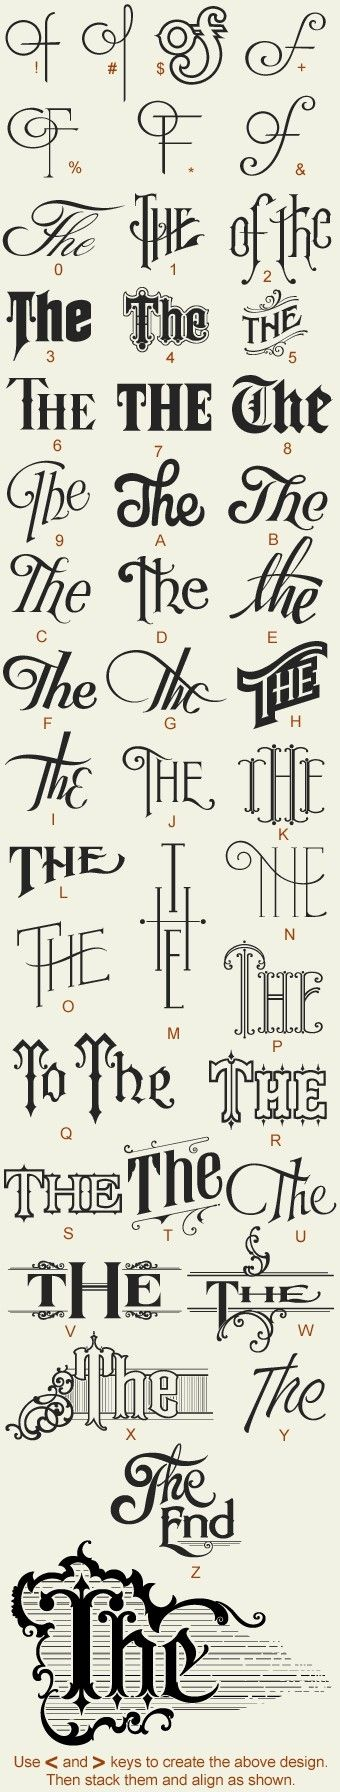 hand drawn typography by lara  www.anchorpress.com